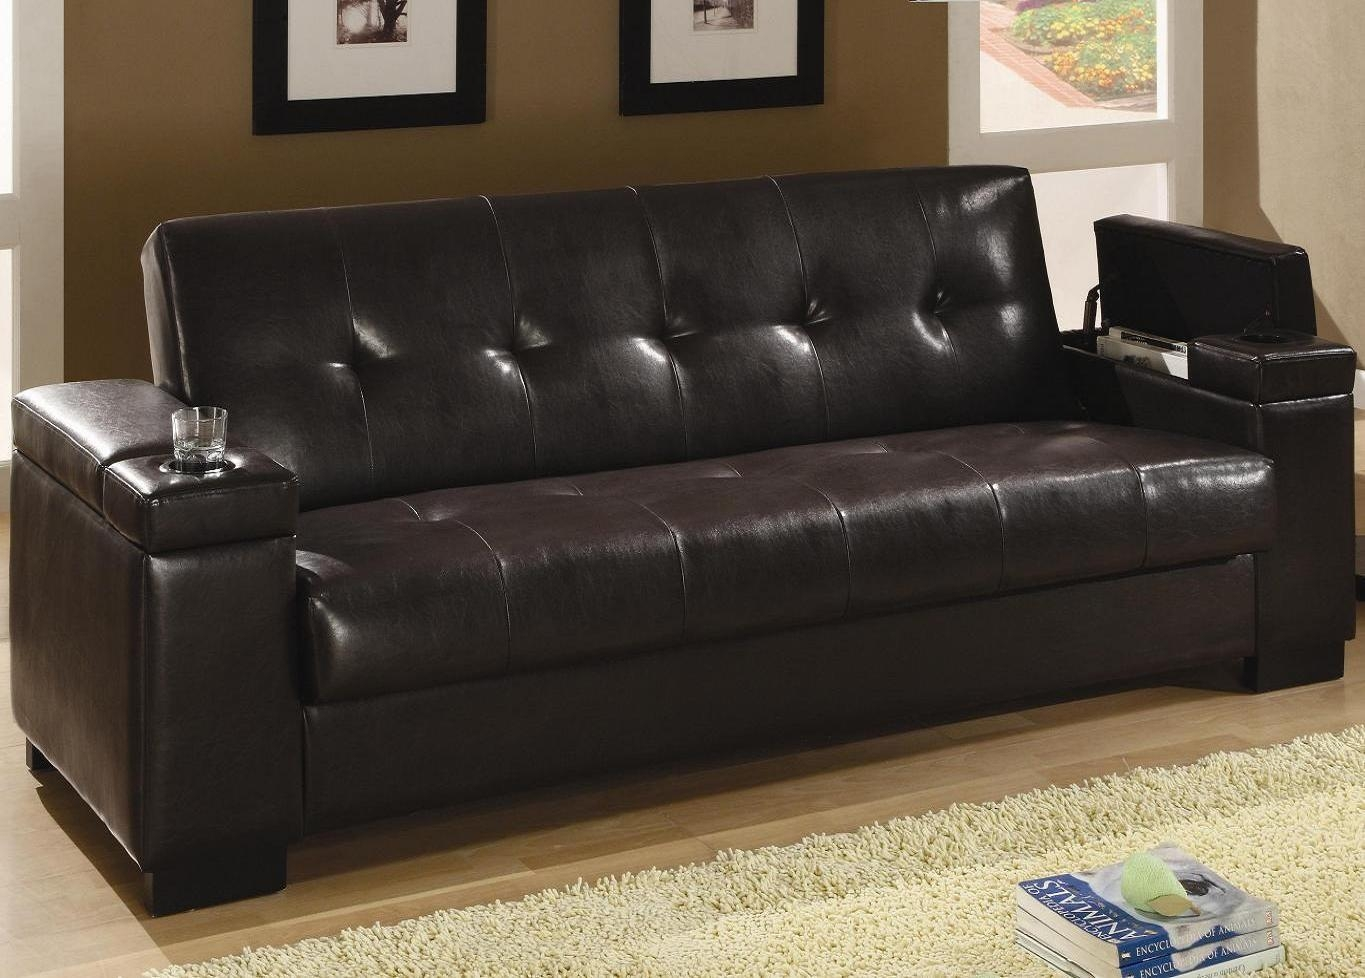 big leather sofa living room design ideas black 20 top lots sofas